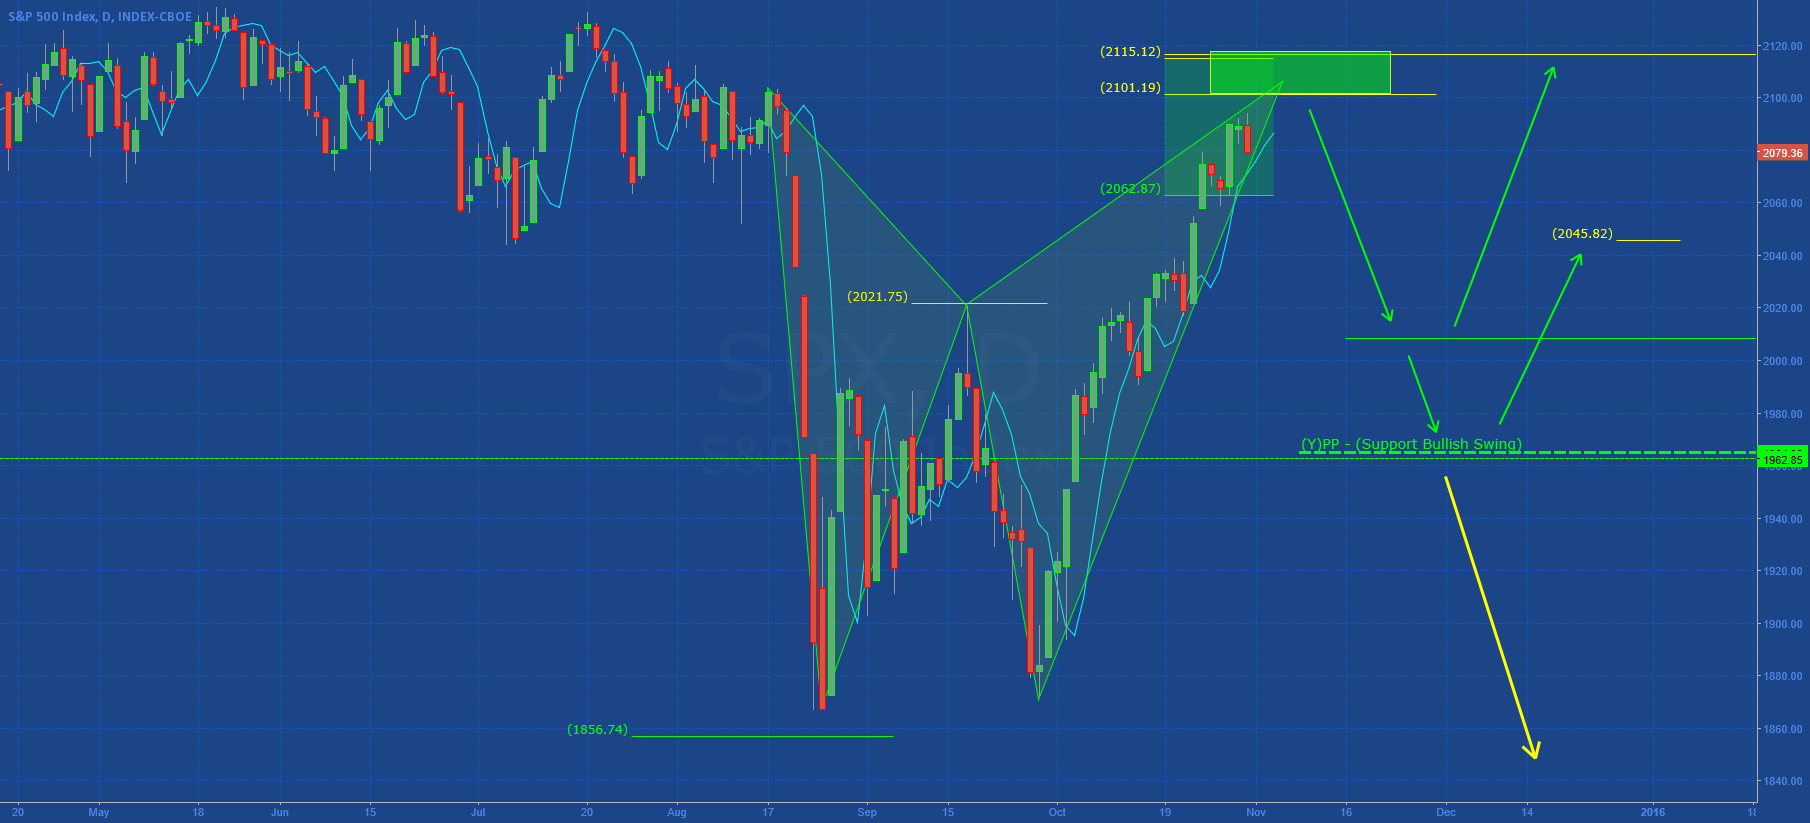 SP500: Harmonic in development?